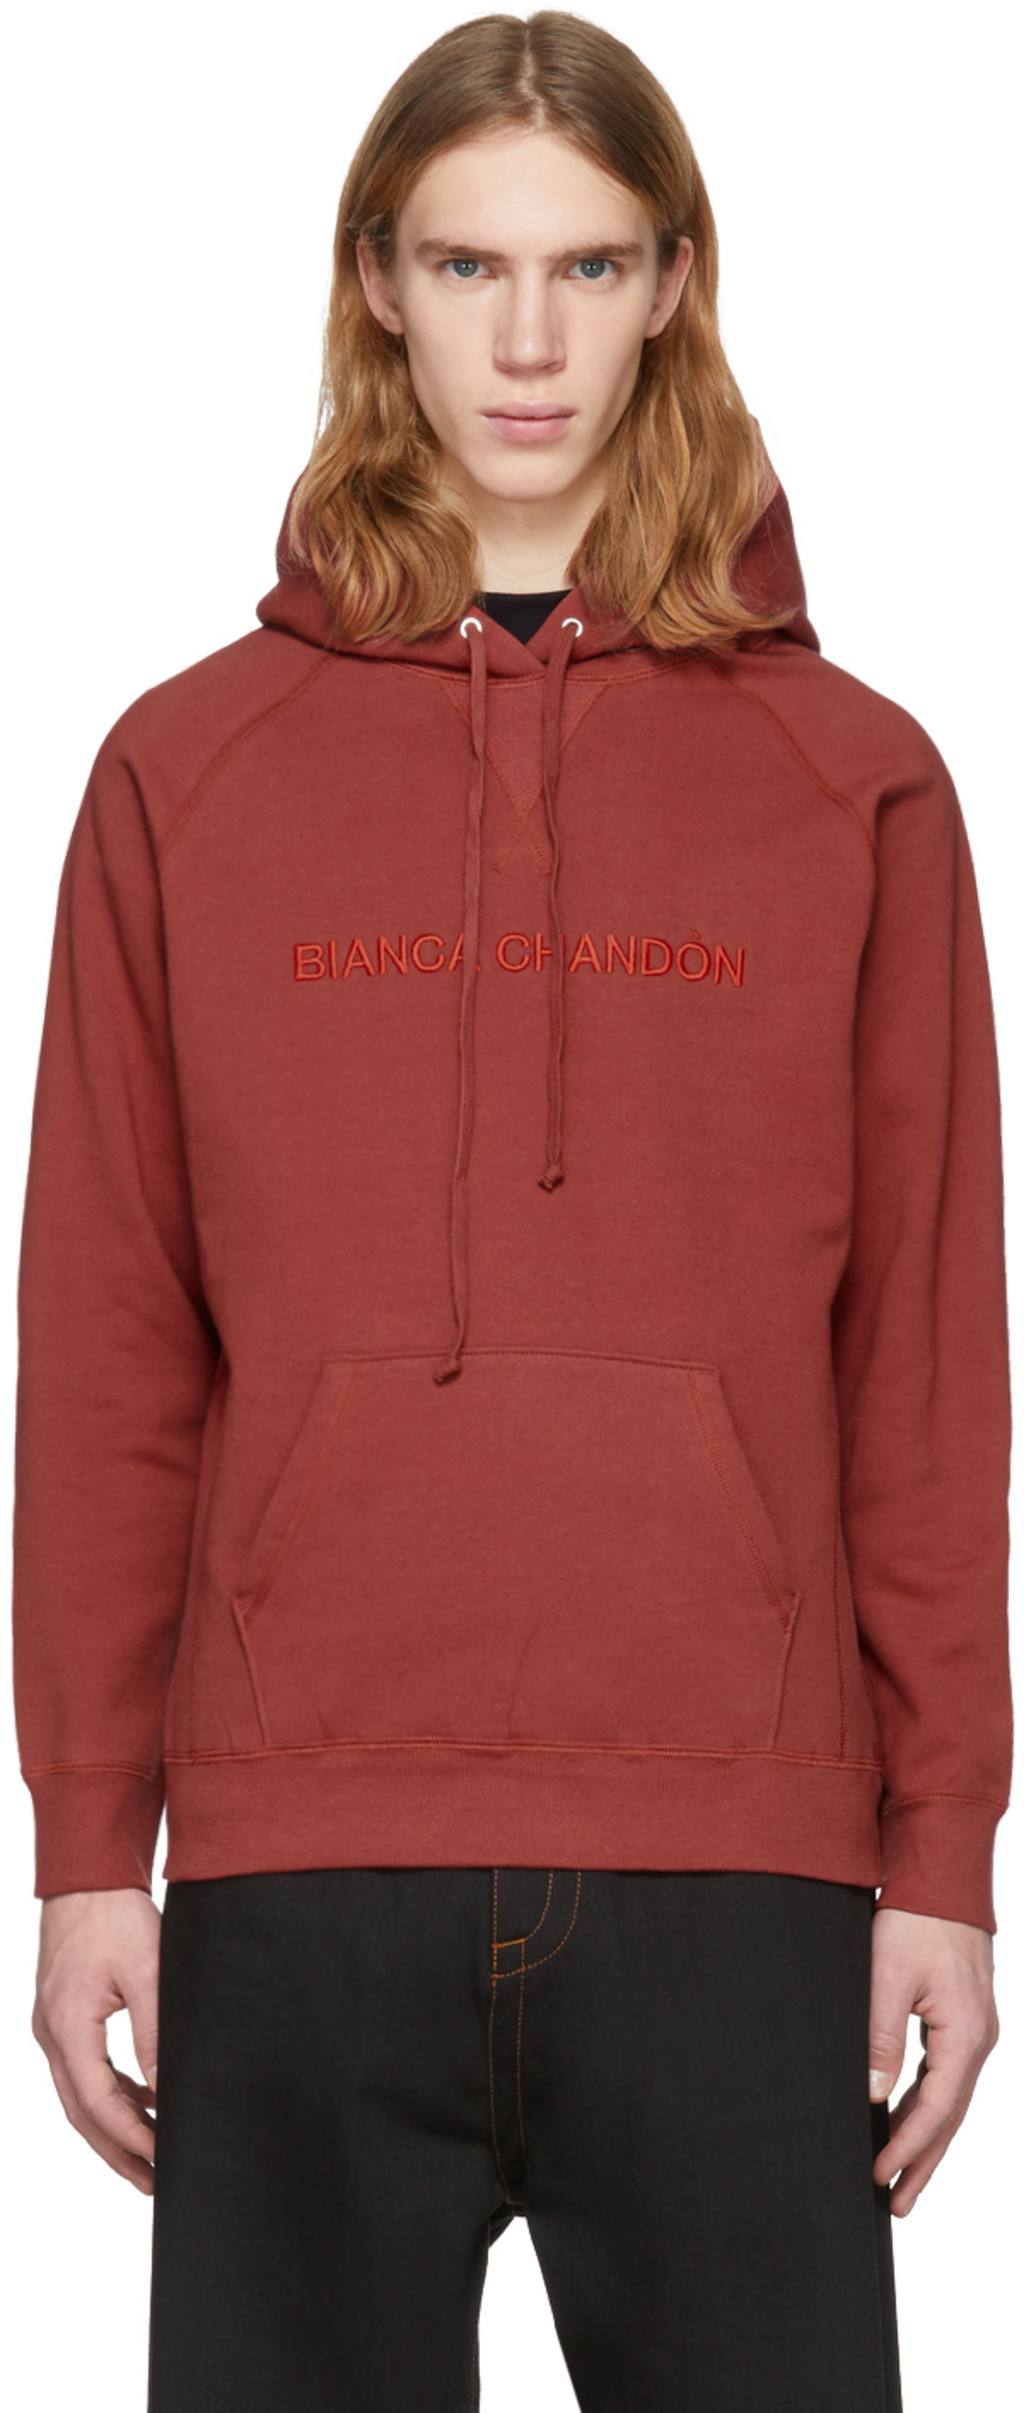 new product b61fb 4249f Collection Collection Collection Chandon Fw18 For Bianca Ssense Ssense  Ssense Ssense Men Y1q0xg